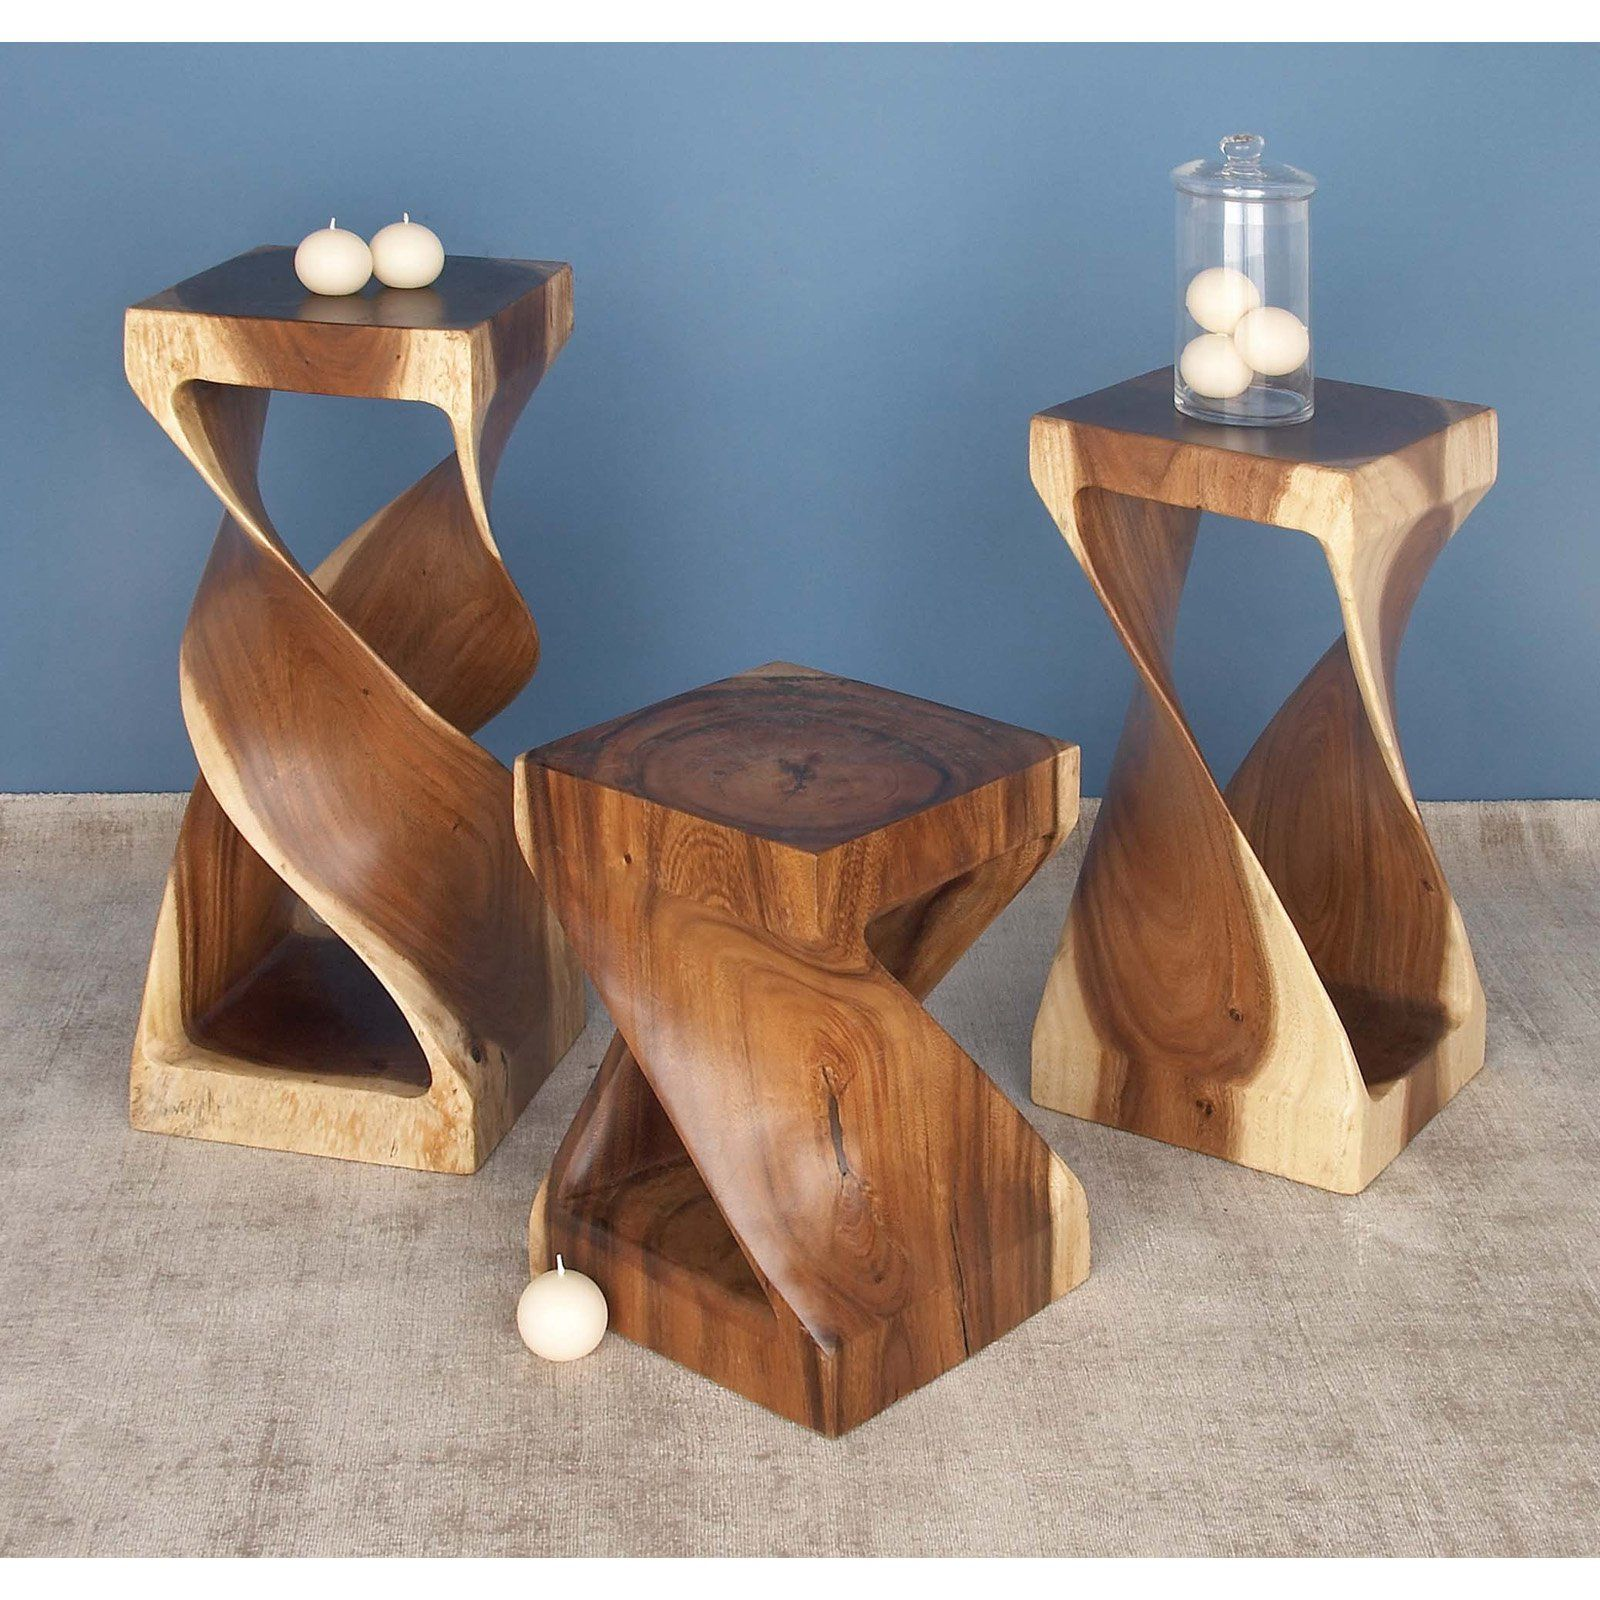 Decmode Natural Suar Wood Square Twisted Design Side Table Wood End Tables Small Accent Tables Square Accent Tables